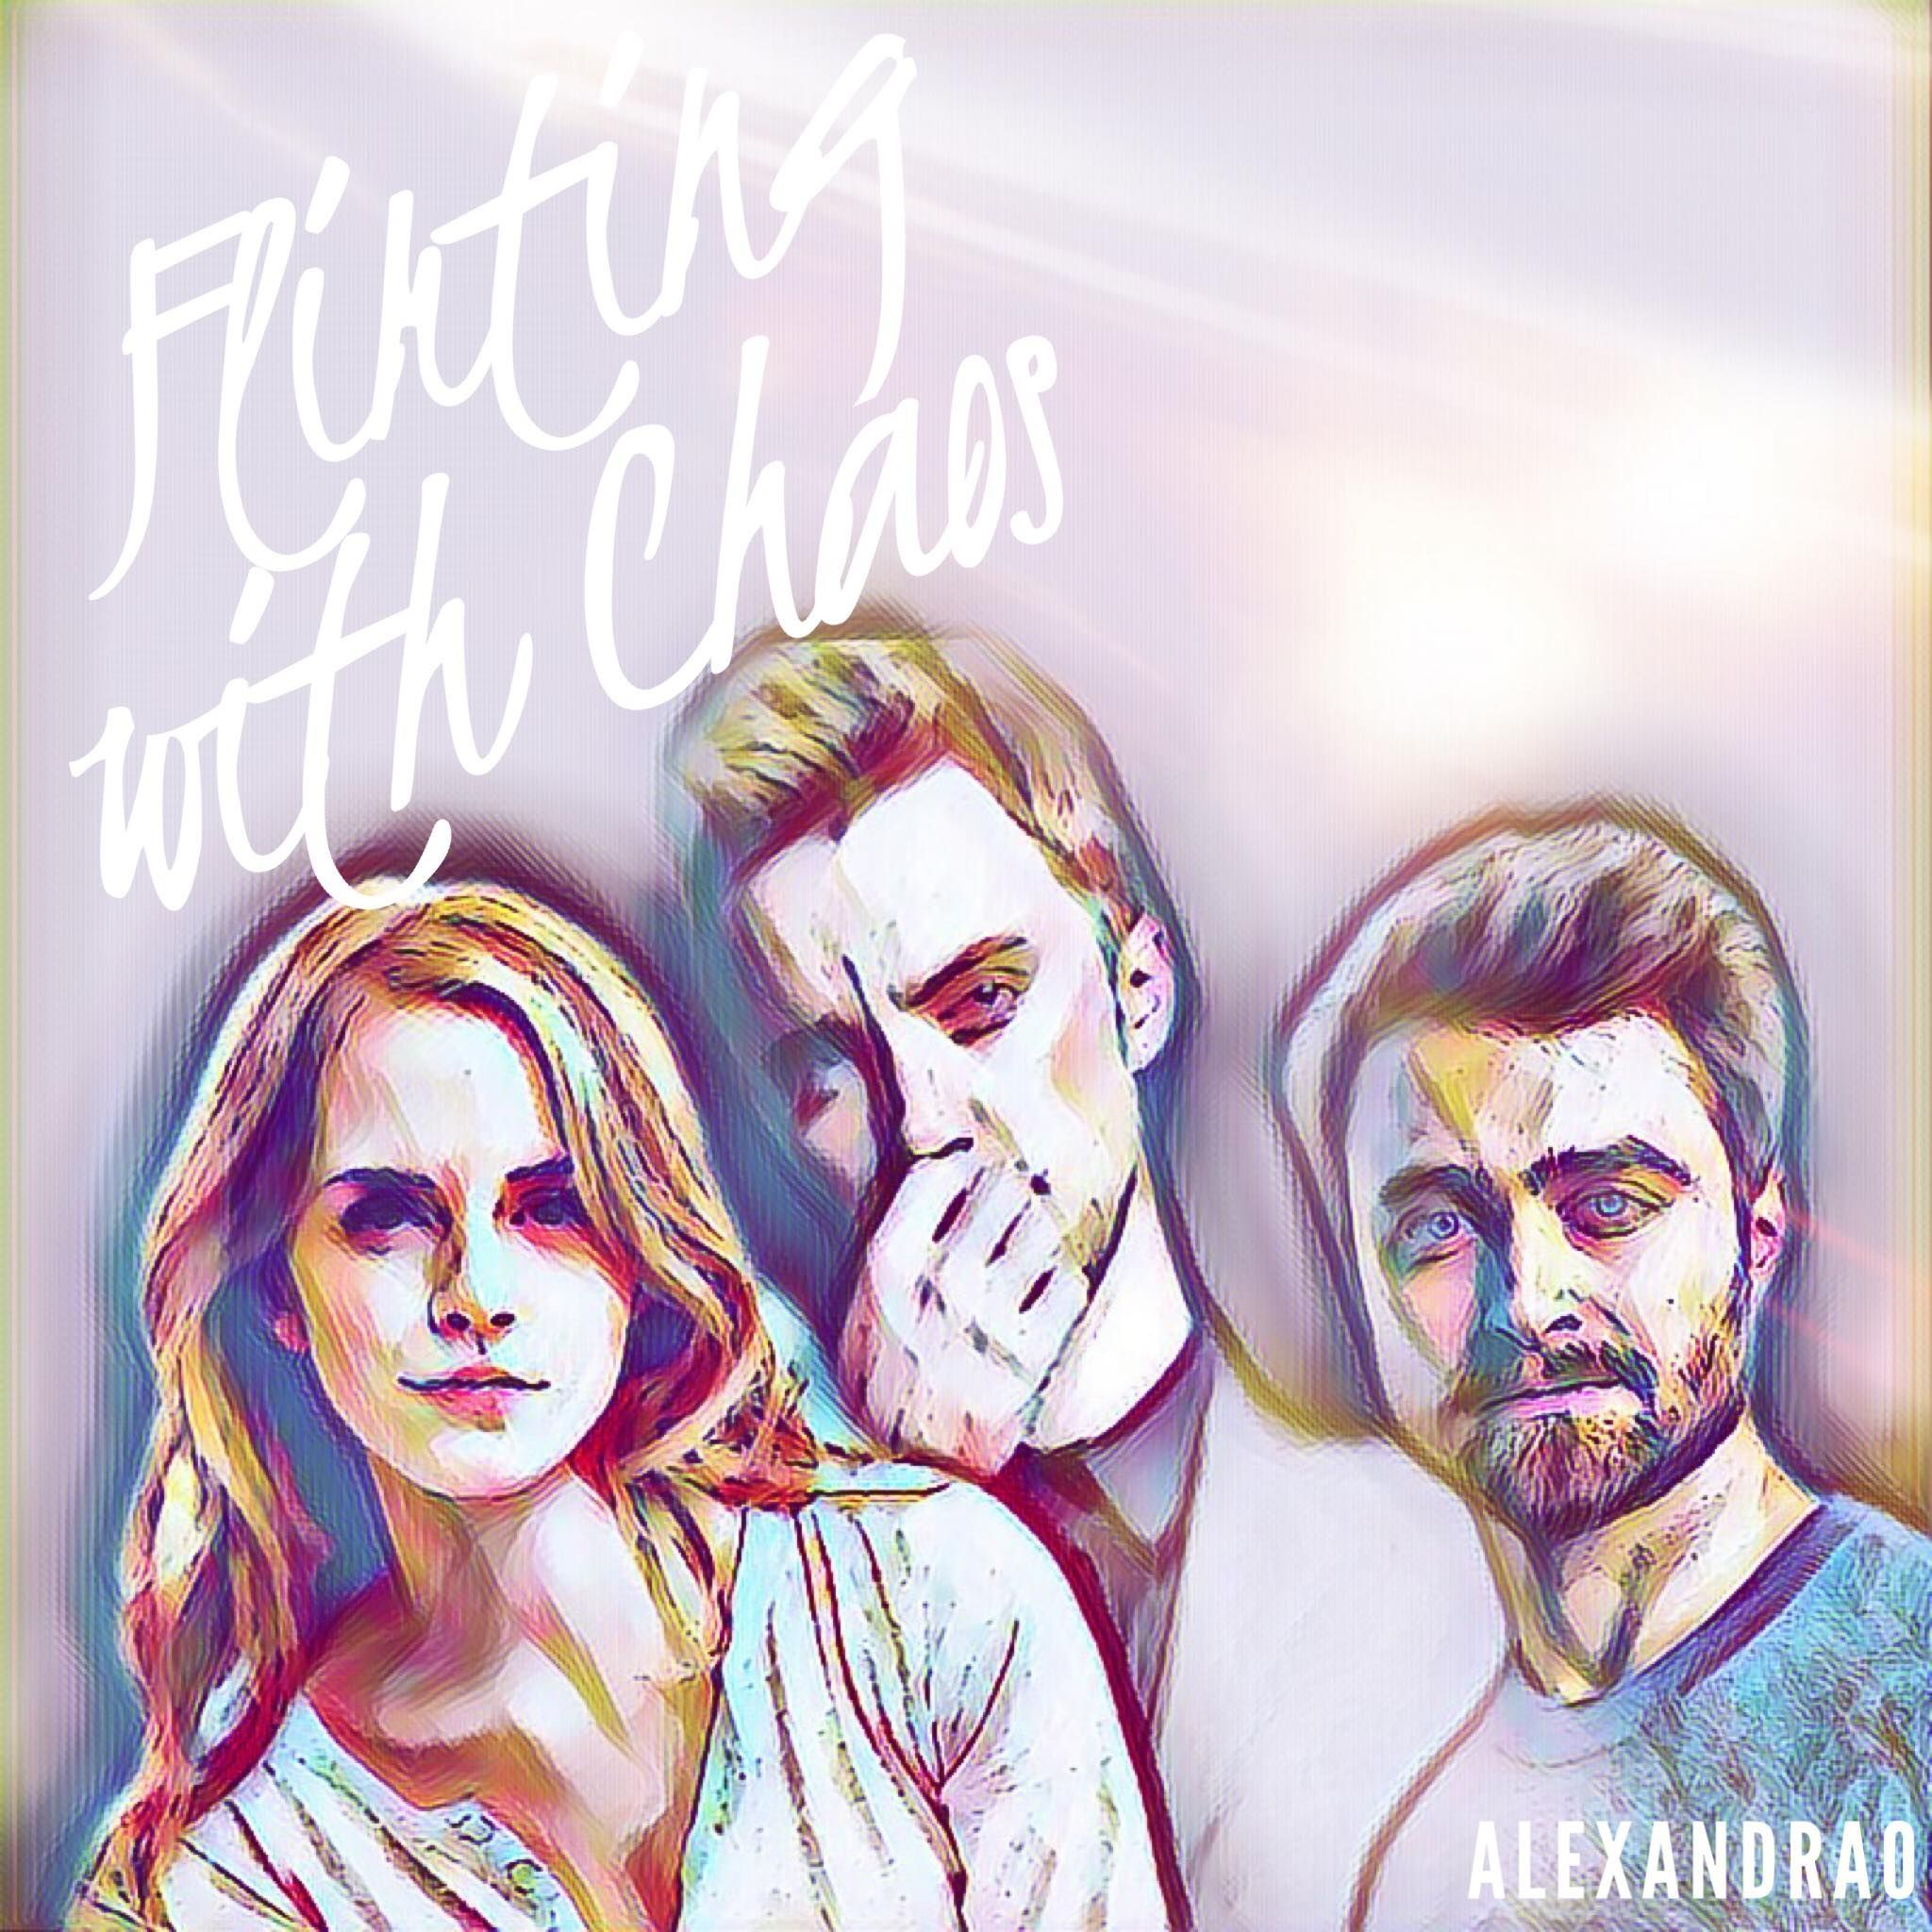 Flirting With Chaos Chapter 1 Alexandrao Harry Potter J K Rowling Archive Of Our Own Draco And Hermione Archive Of Our Own Harry And Hermione